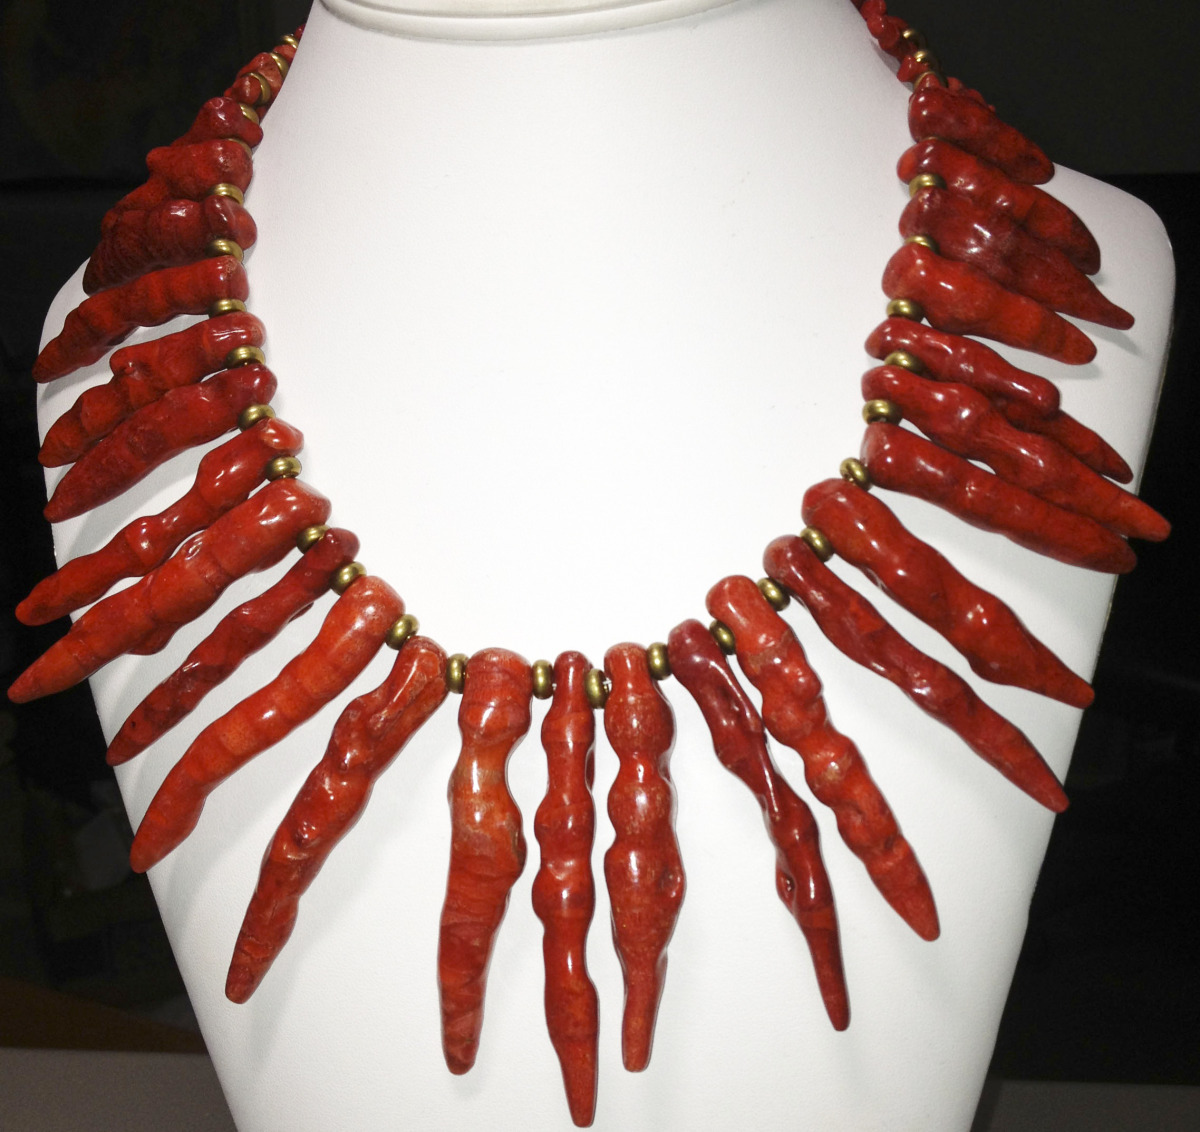 Chili Pepper Passion Regular $397 Sale $157 (large view)